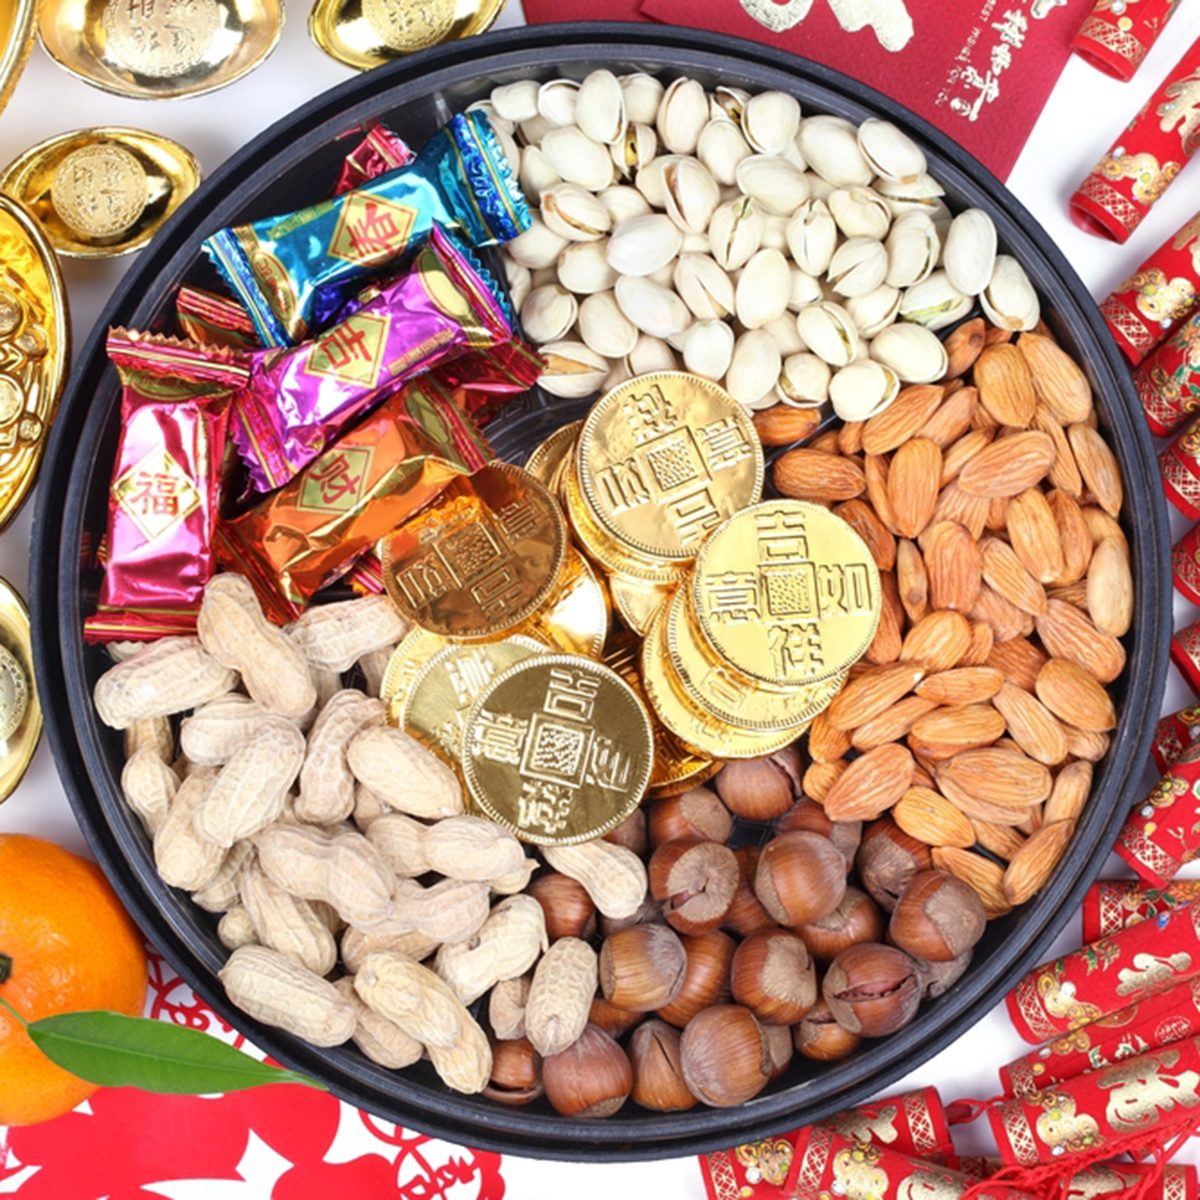 Chinese new year ornaments and candy box.; Shutterstock ID 65268727